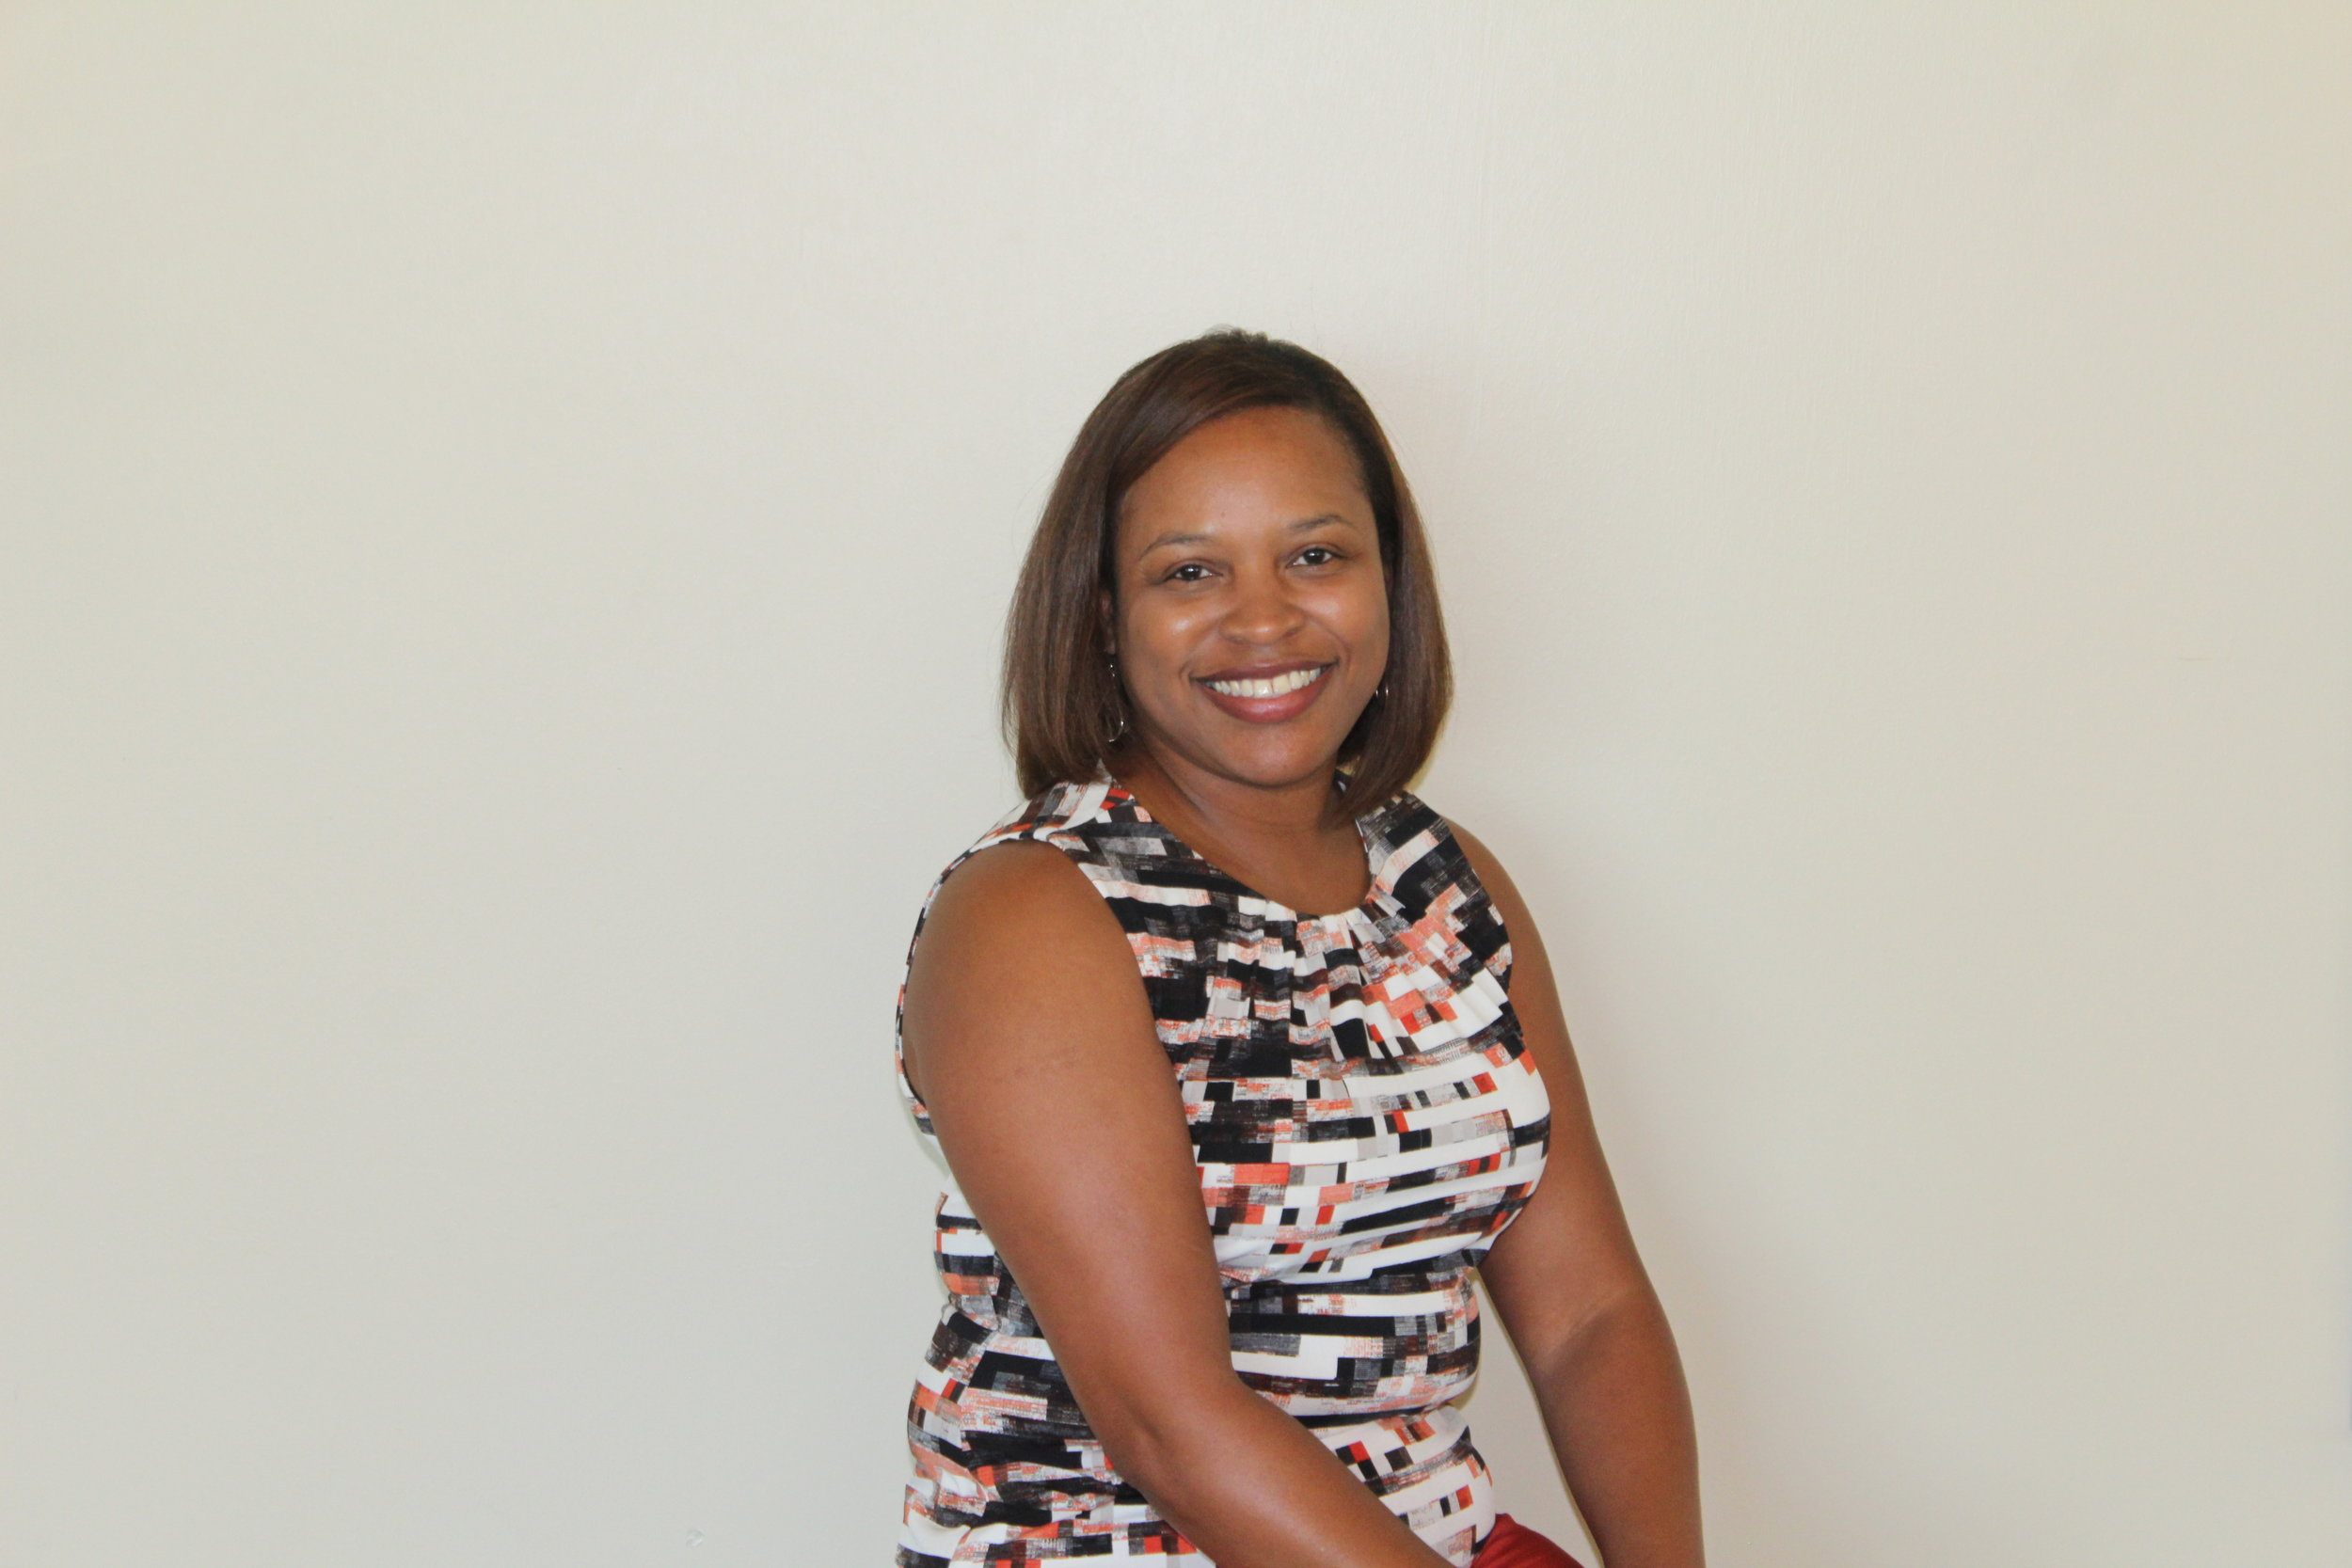 Sherrika Sanders, Sr. Technical Engineer, Manner Polymers